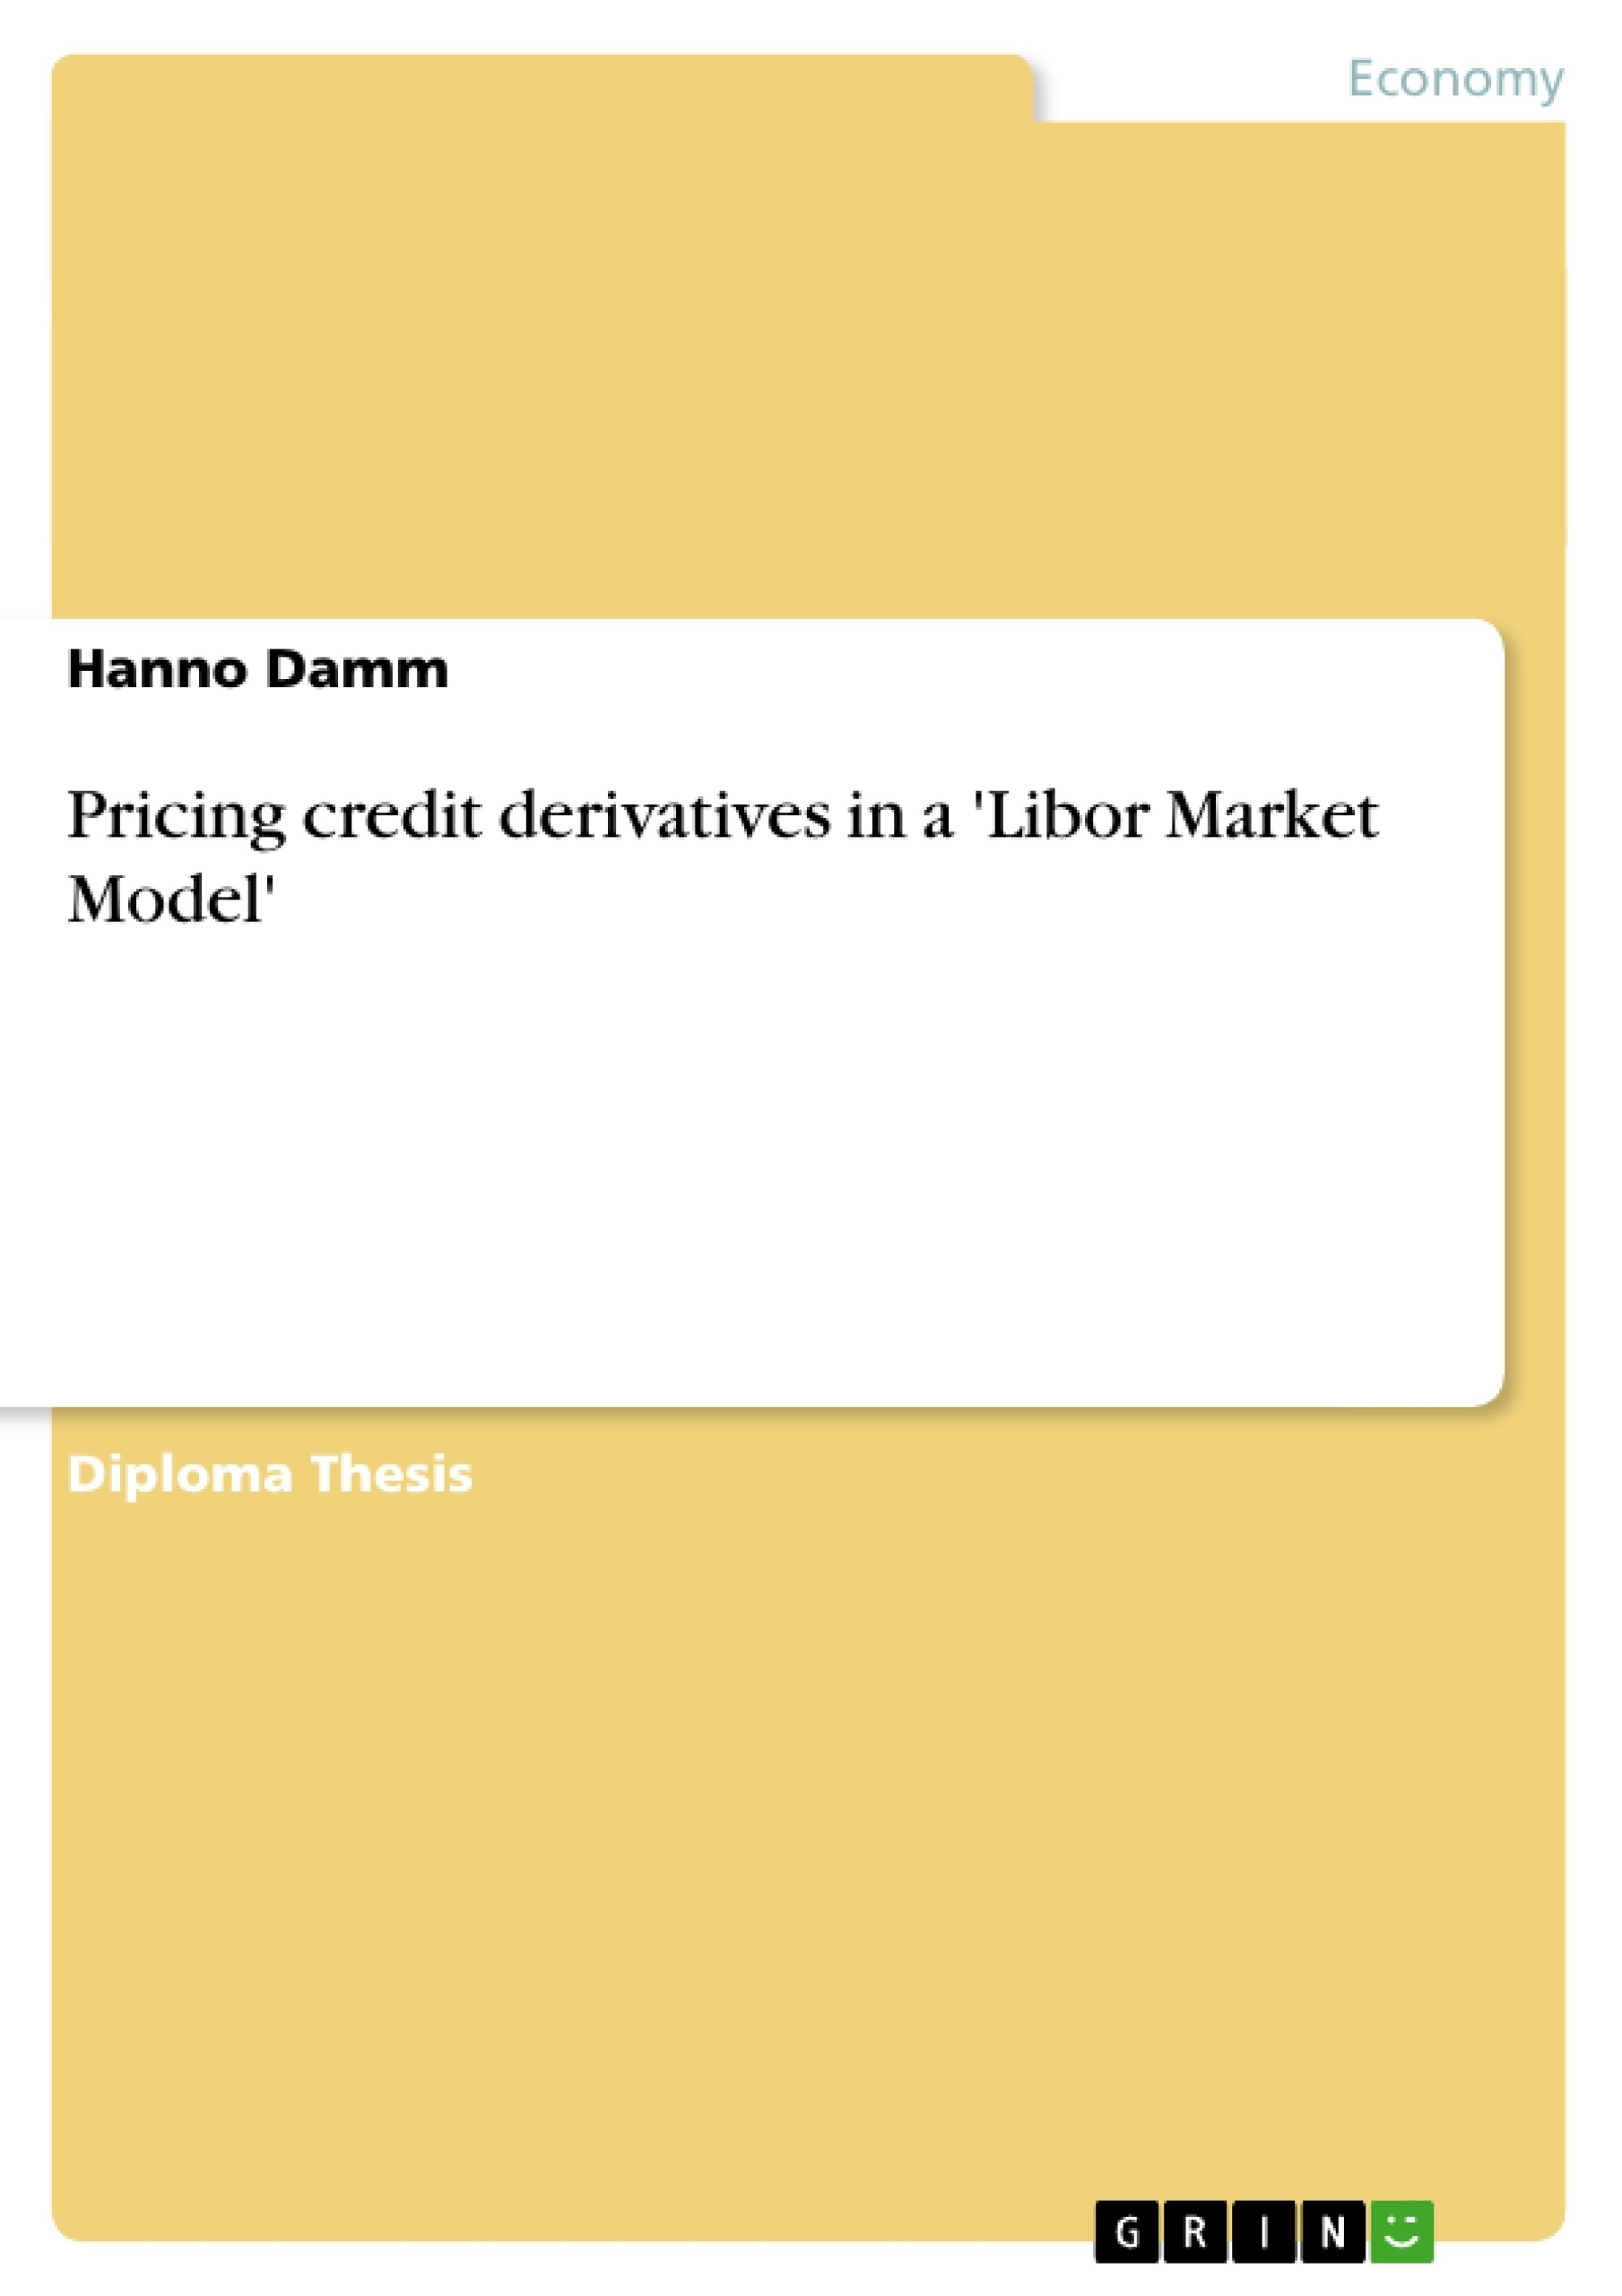 Title: Pricing credit derivatives in a 'Libor Market Model'